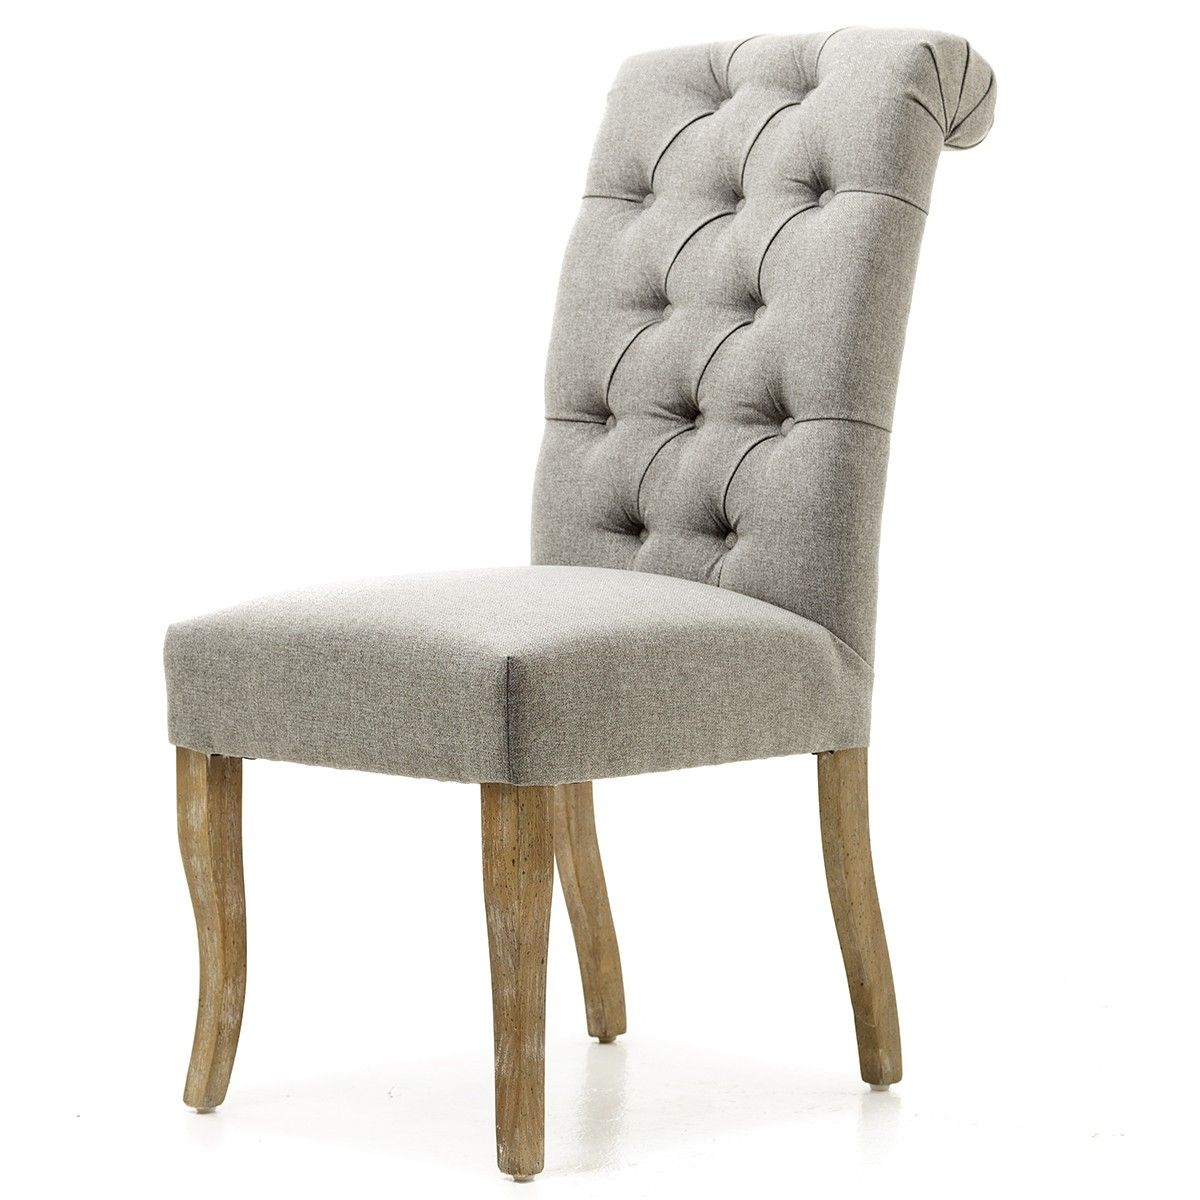 Buy Sydney Dining Side Chair With Tufting Toronto Ottawa Halifax